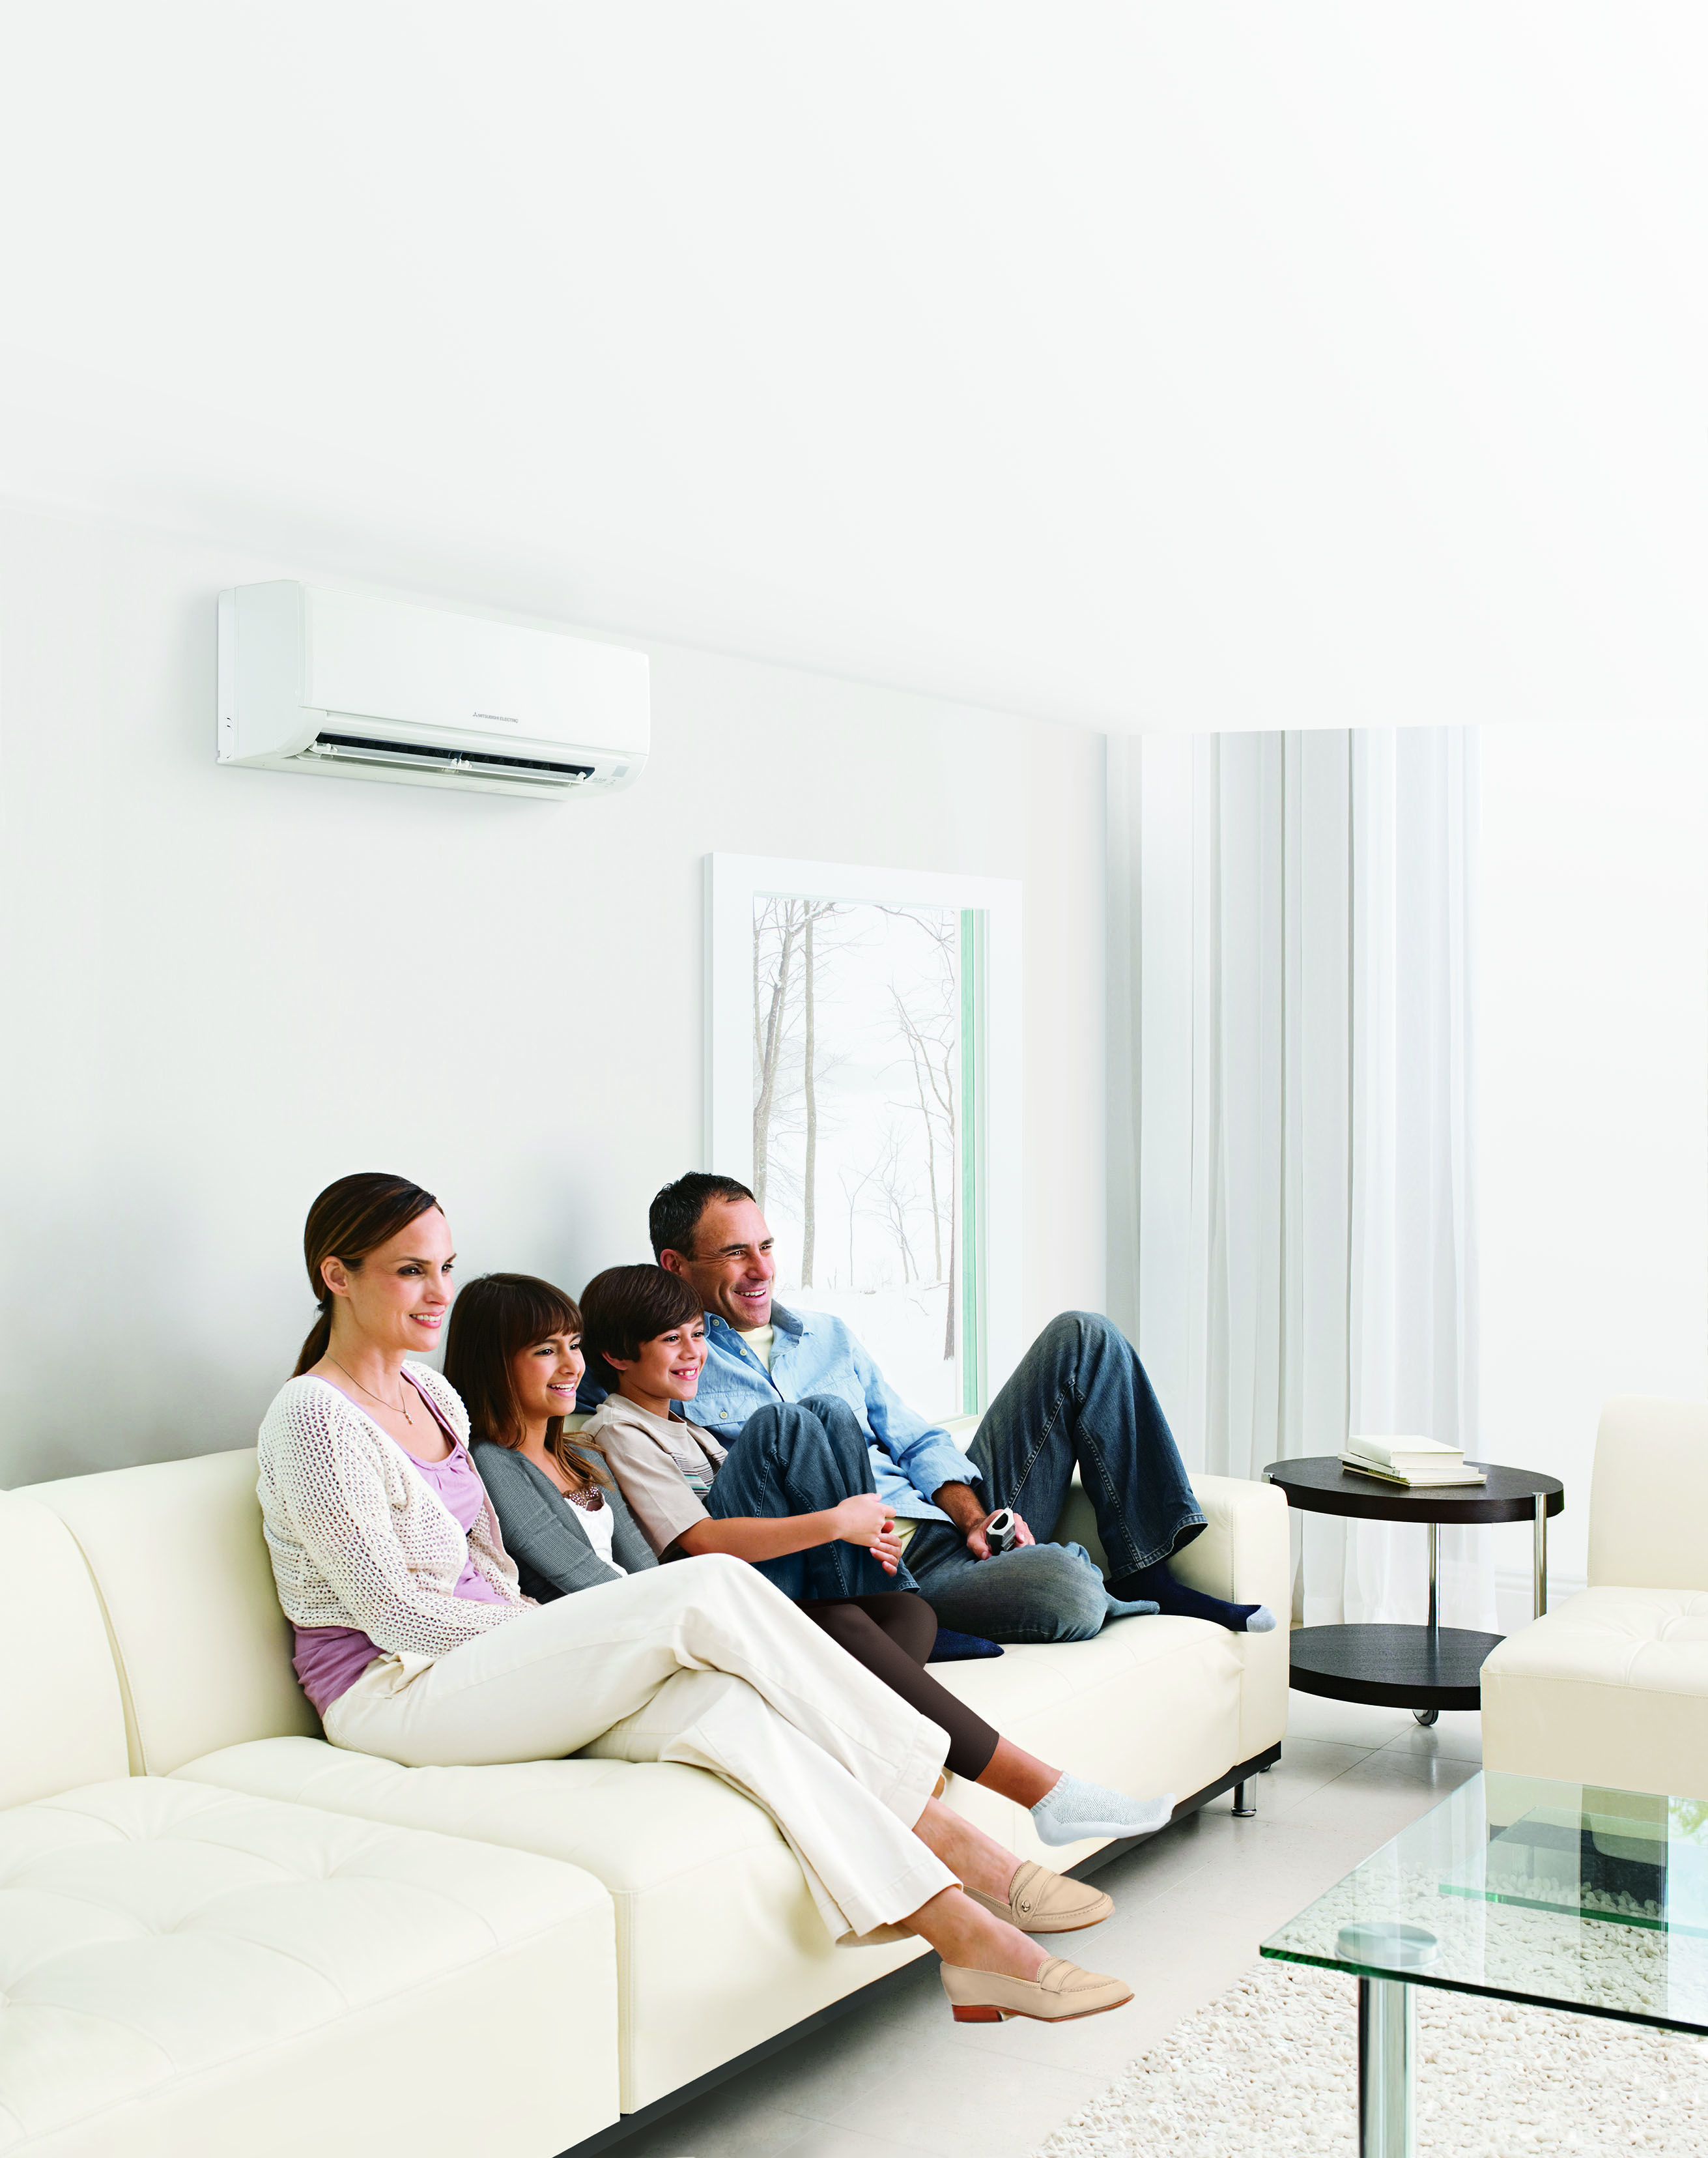 ductless heating